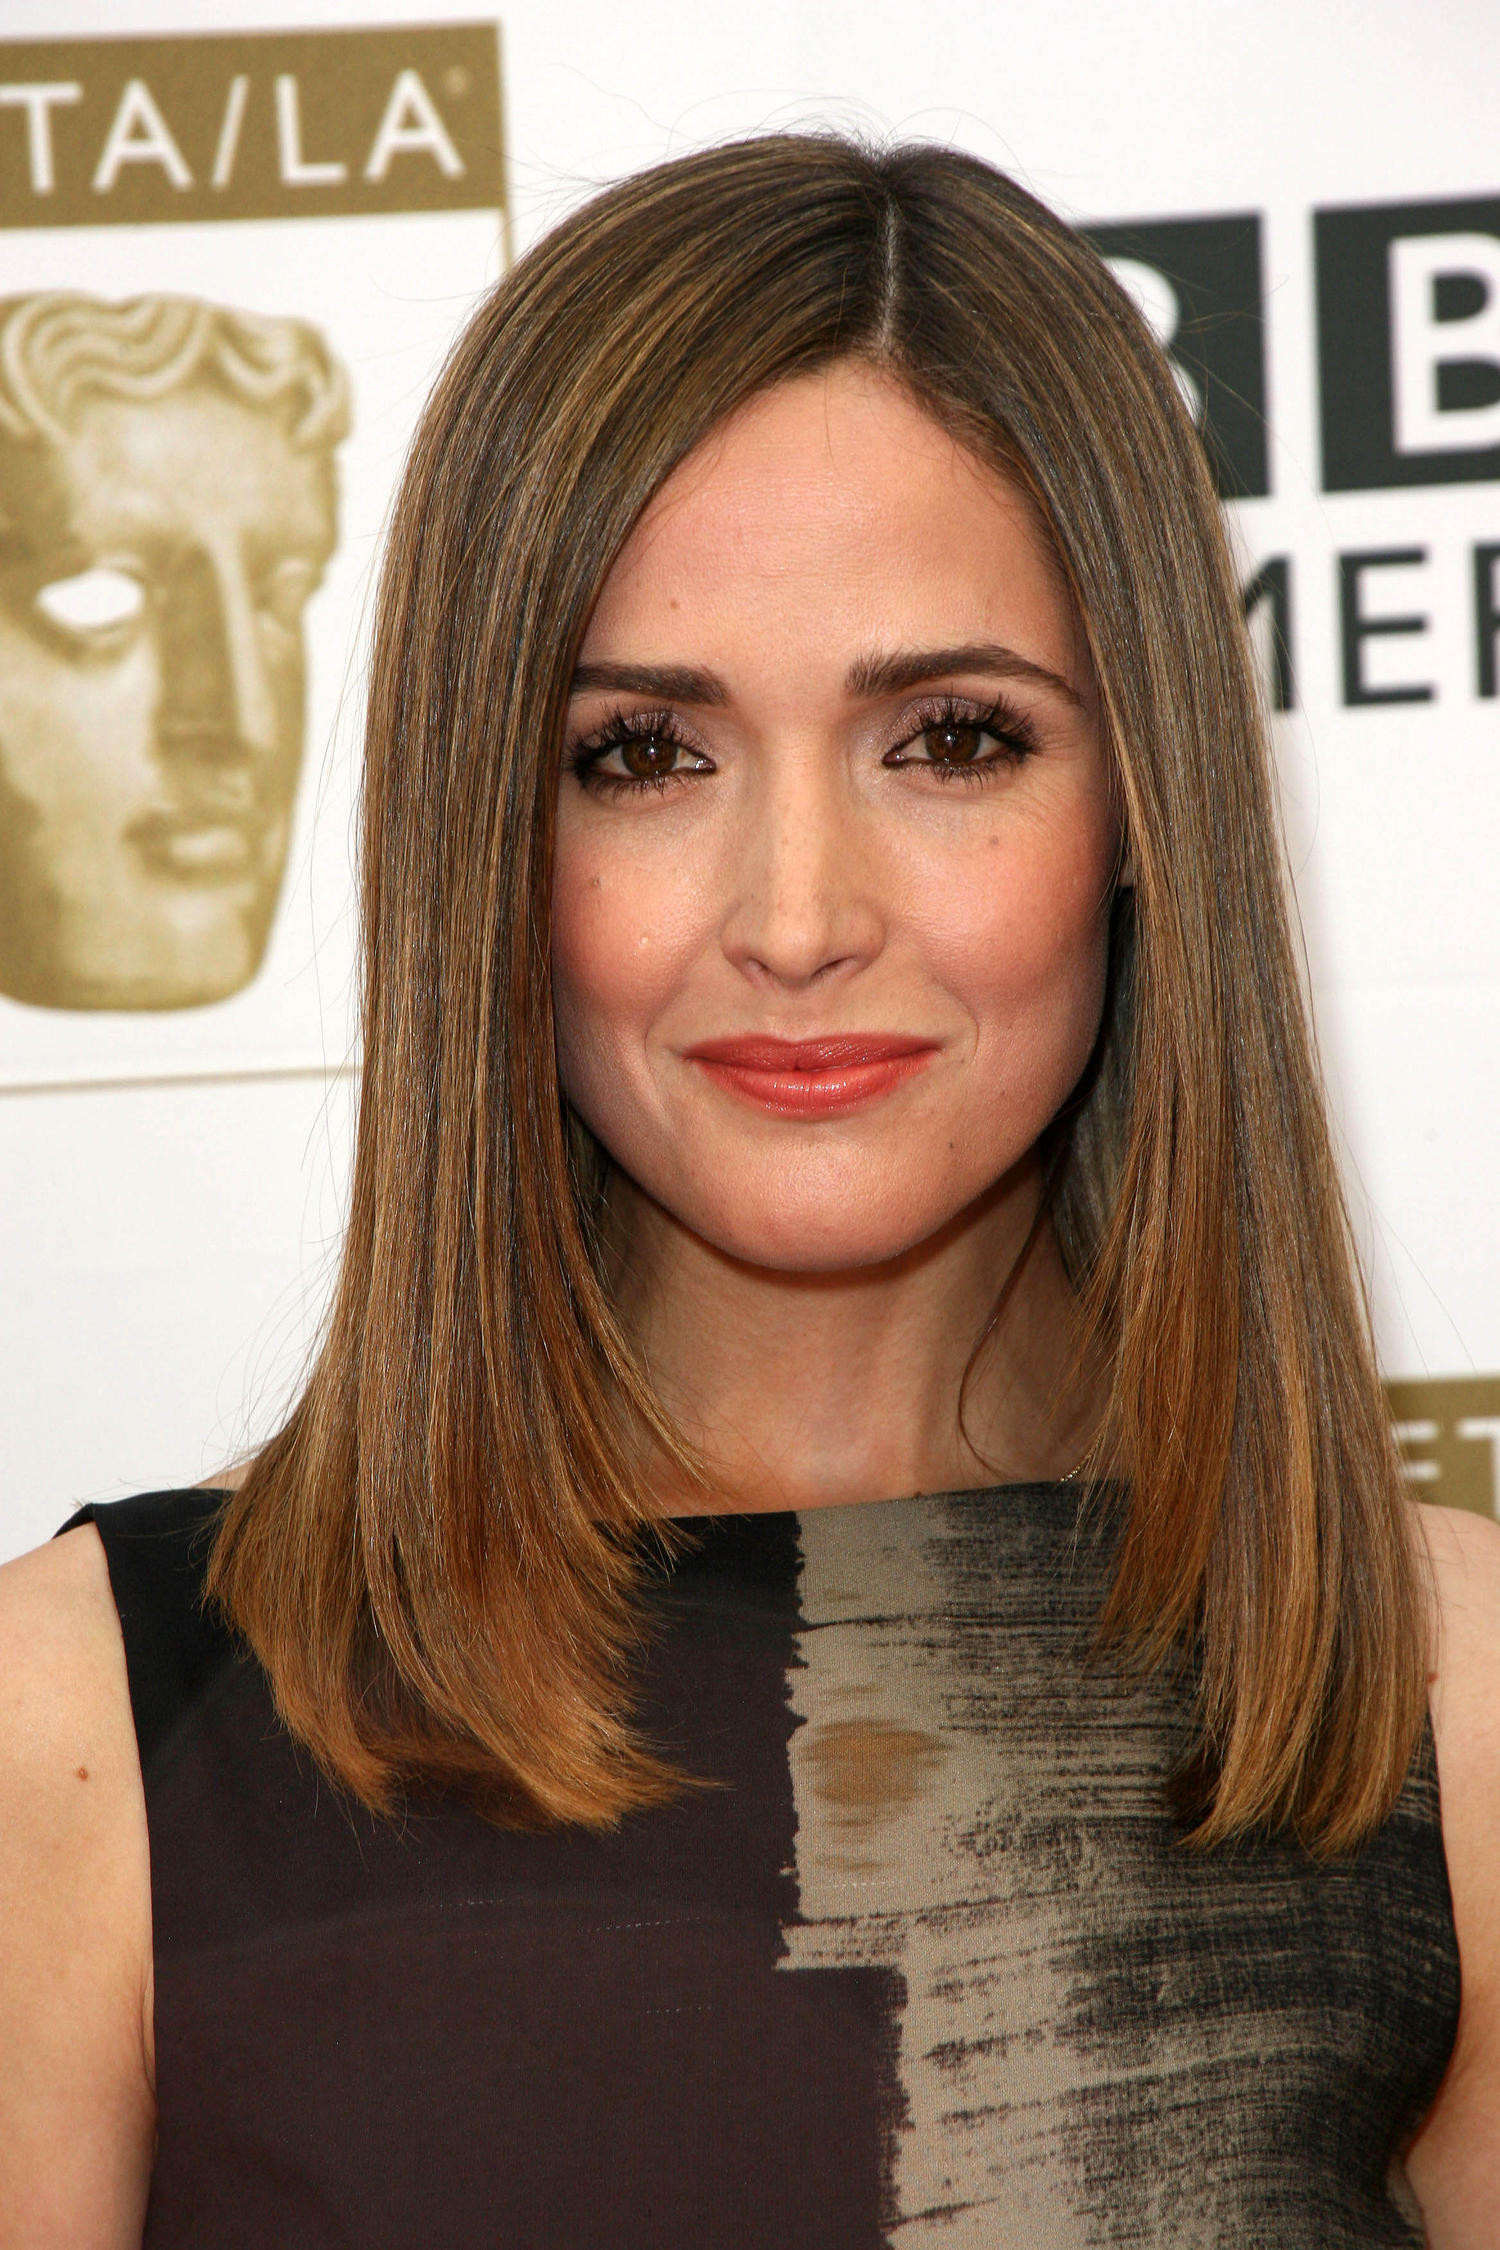 Best ideas about Classic Haircuts For Women . Save or Pin 8 Classic Hairstyles That Will Always Be Chic Now.